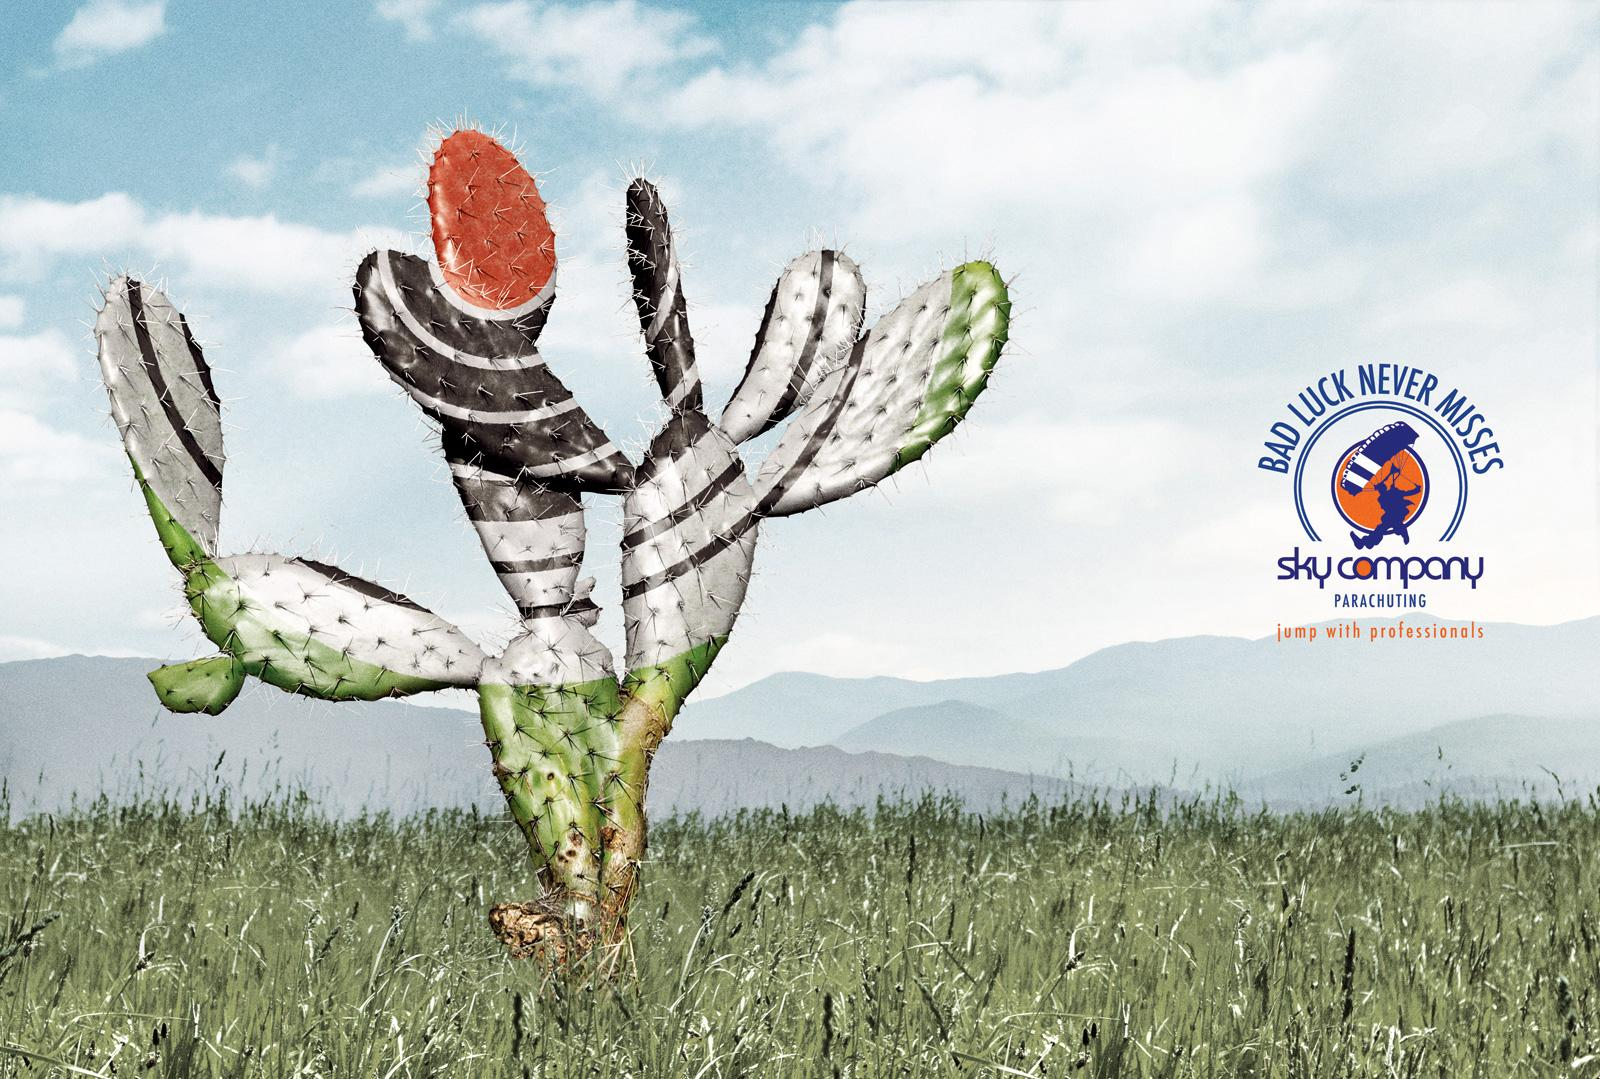 Sky Company Skydiving Print Ad -  Target, Cactus